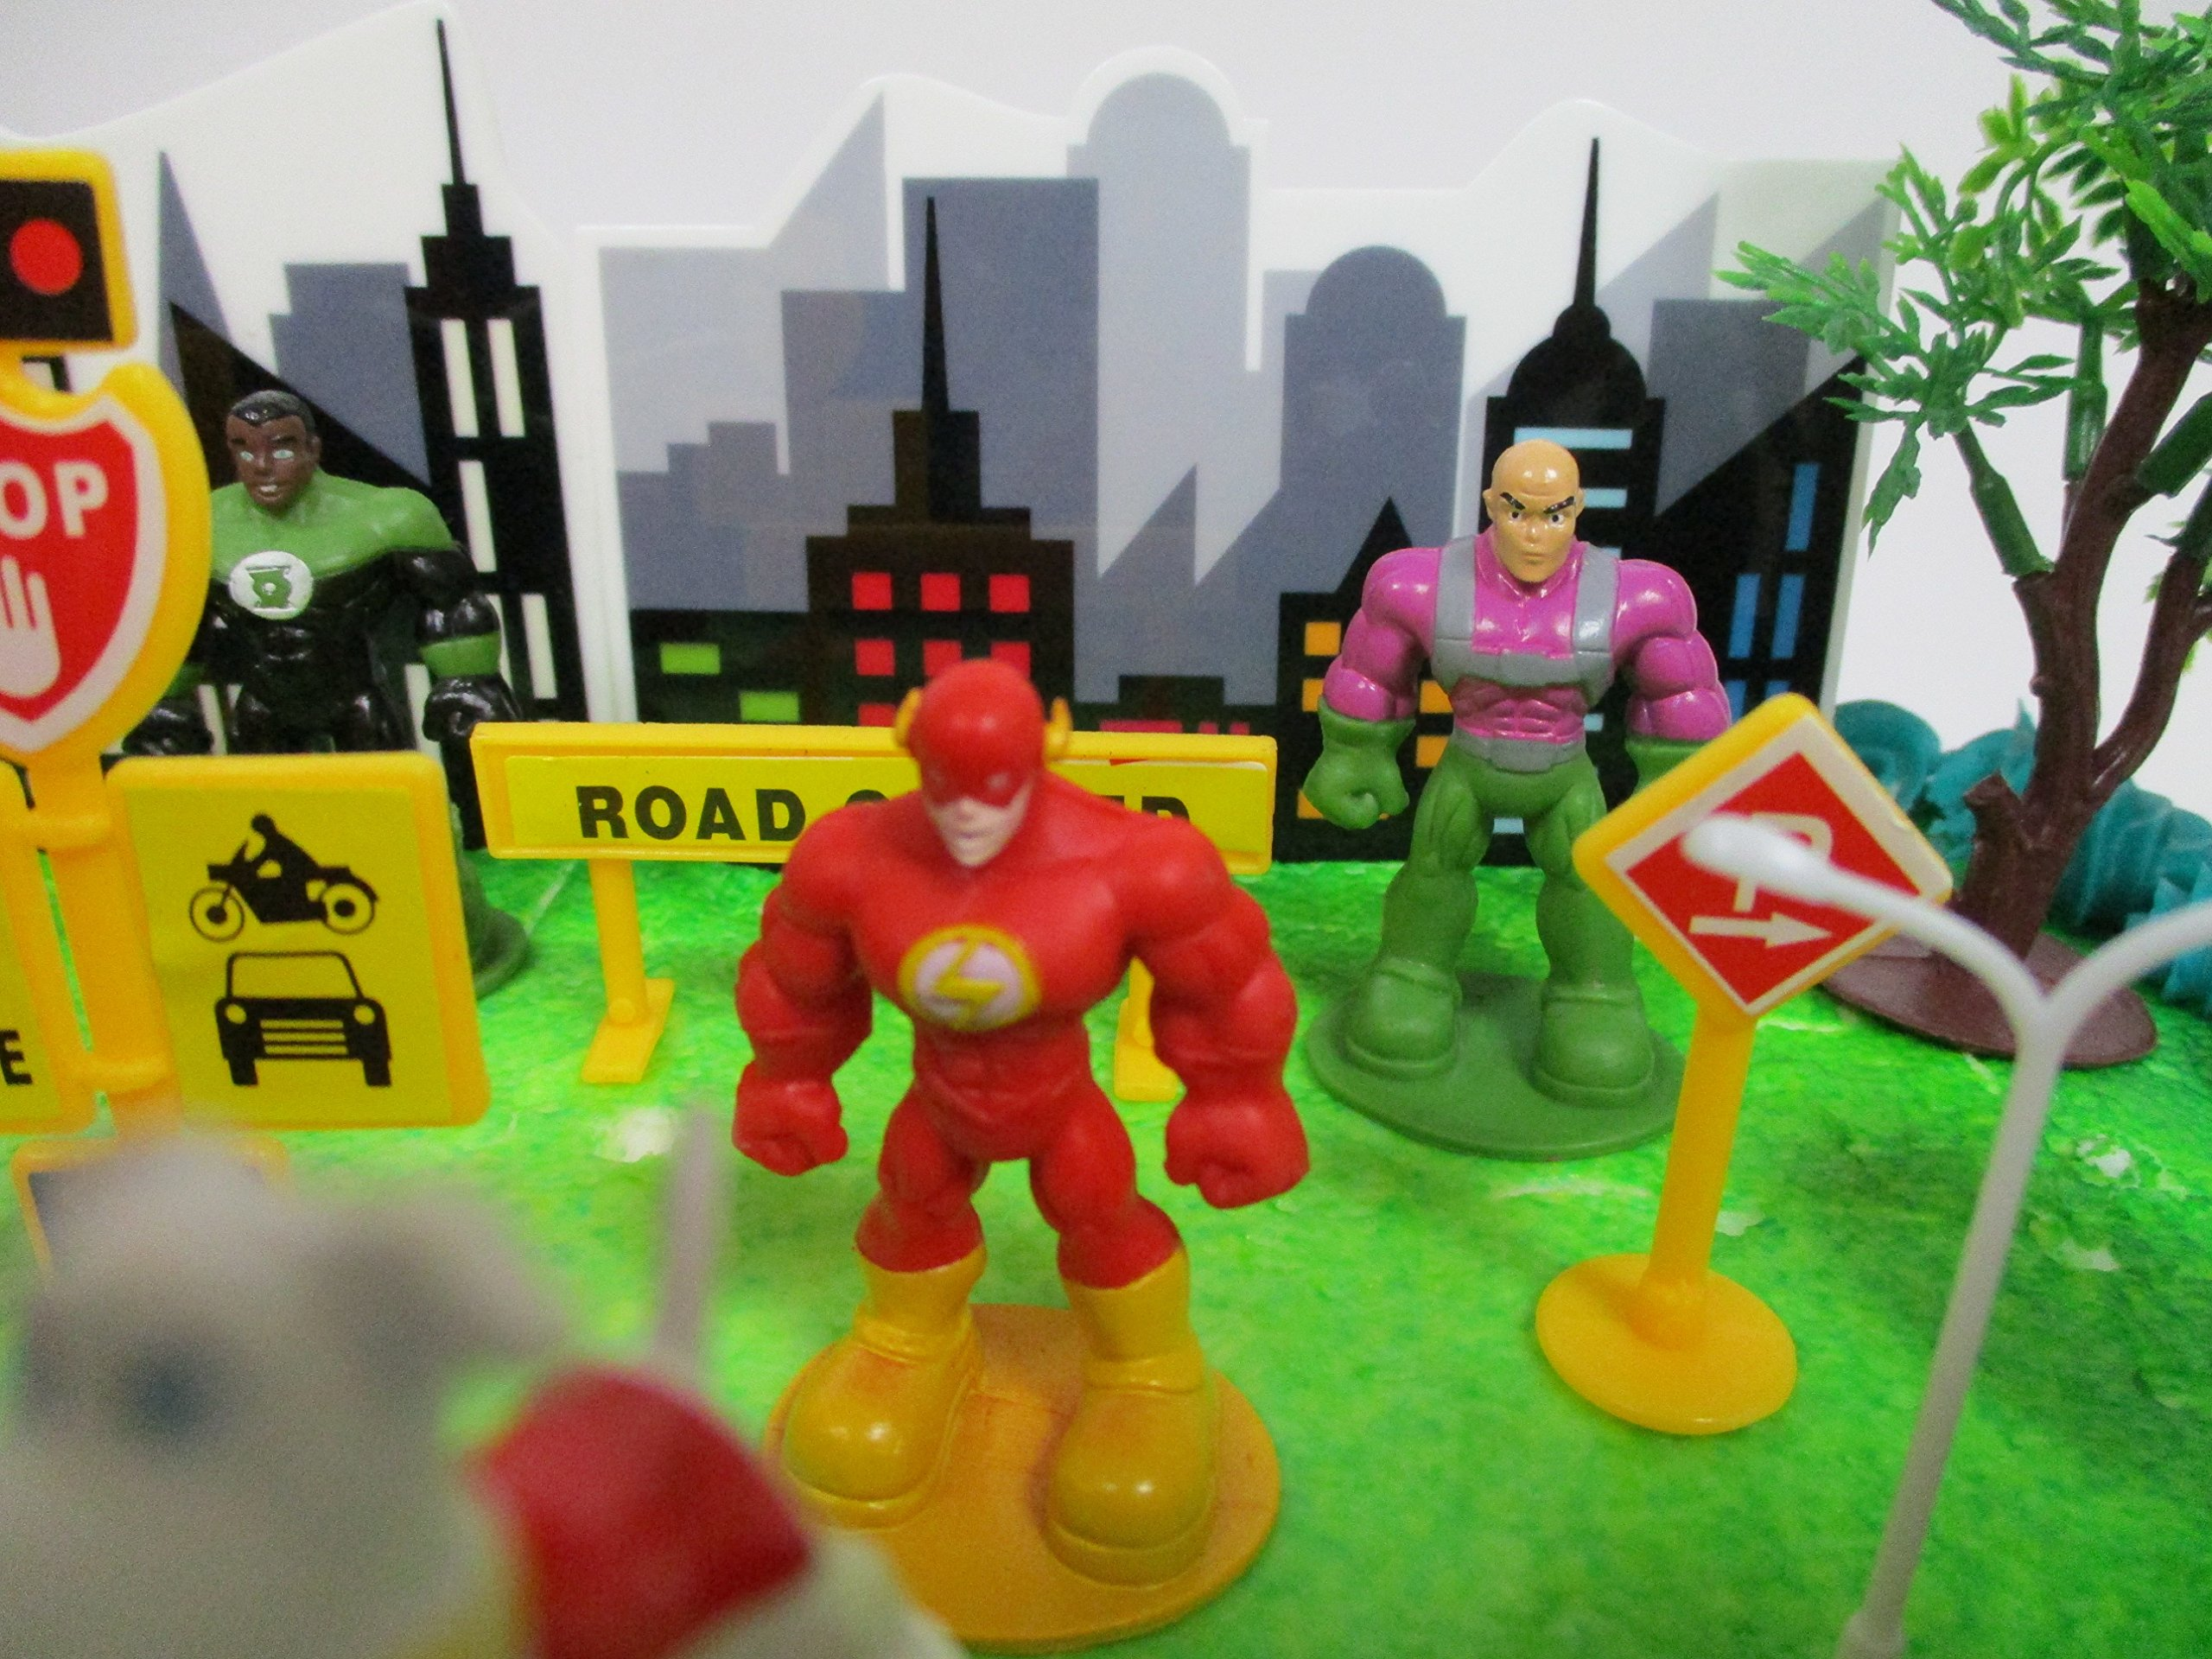 DC Comic Super Friends Birthday Cake Topper Set Featuring Super Hero Crime Fighters and Villains with Decorative Accessories by Kitoo (Image #7)